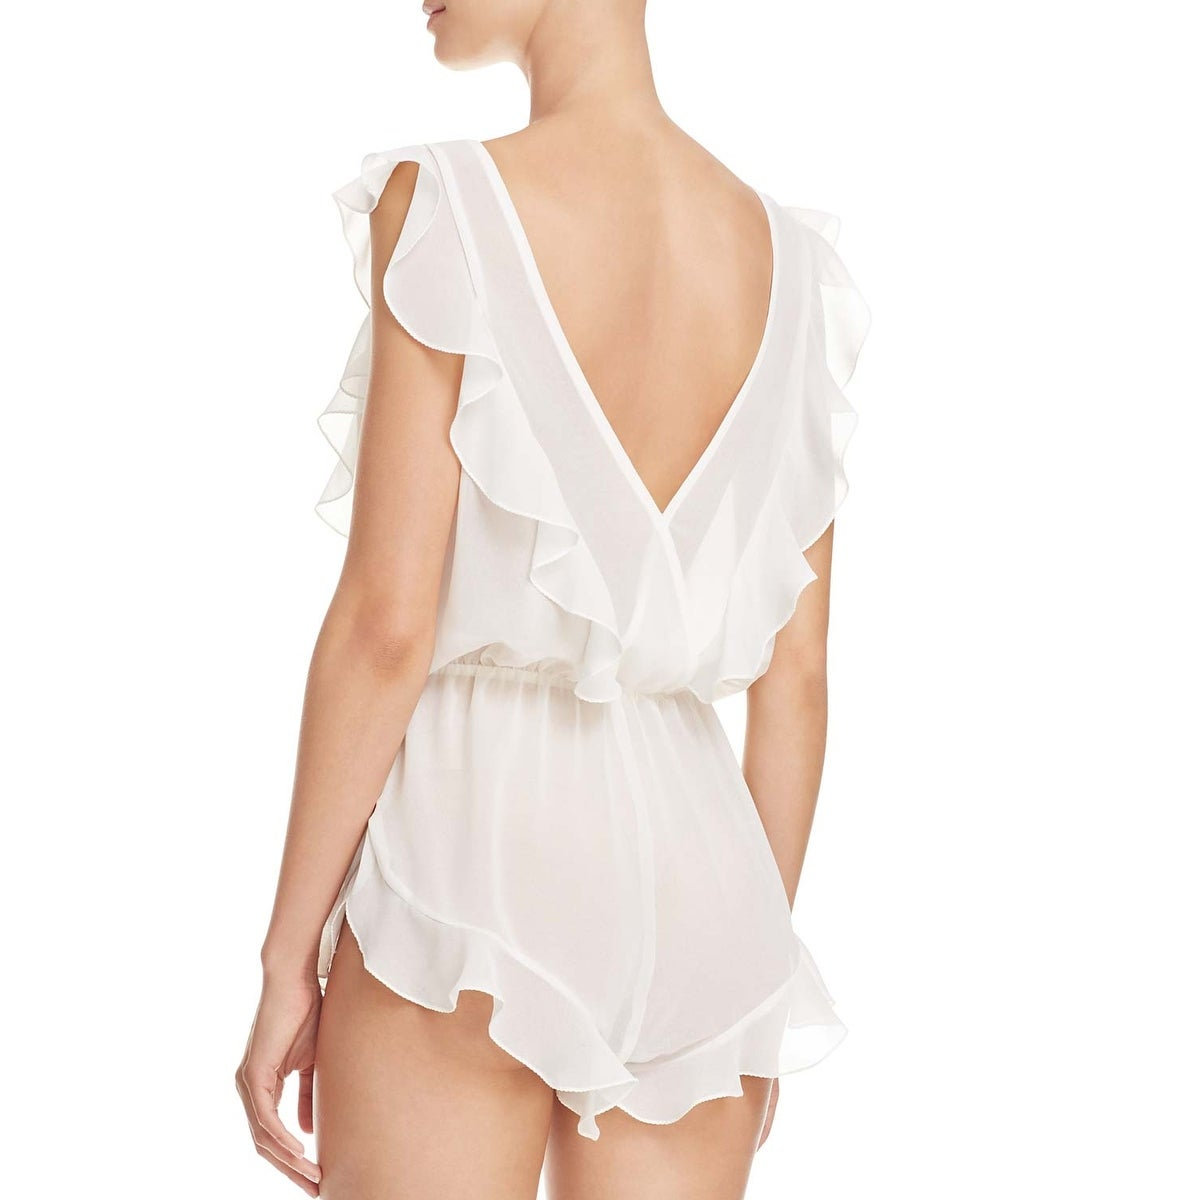 b925e4463a4 Shop Flora Nikrooz Ladies White Ivory Fou Fou Sheer Flirty Romper Large L -  Free Shipping On Orders Over  45 - Overstock - 20896576